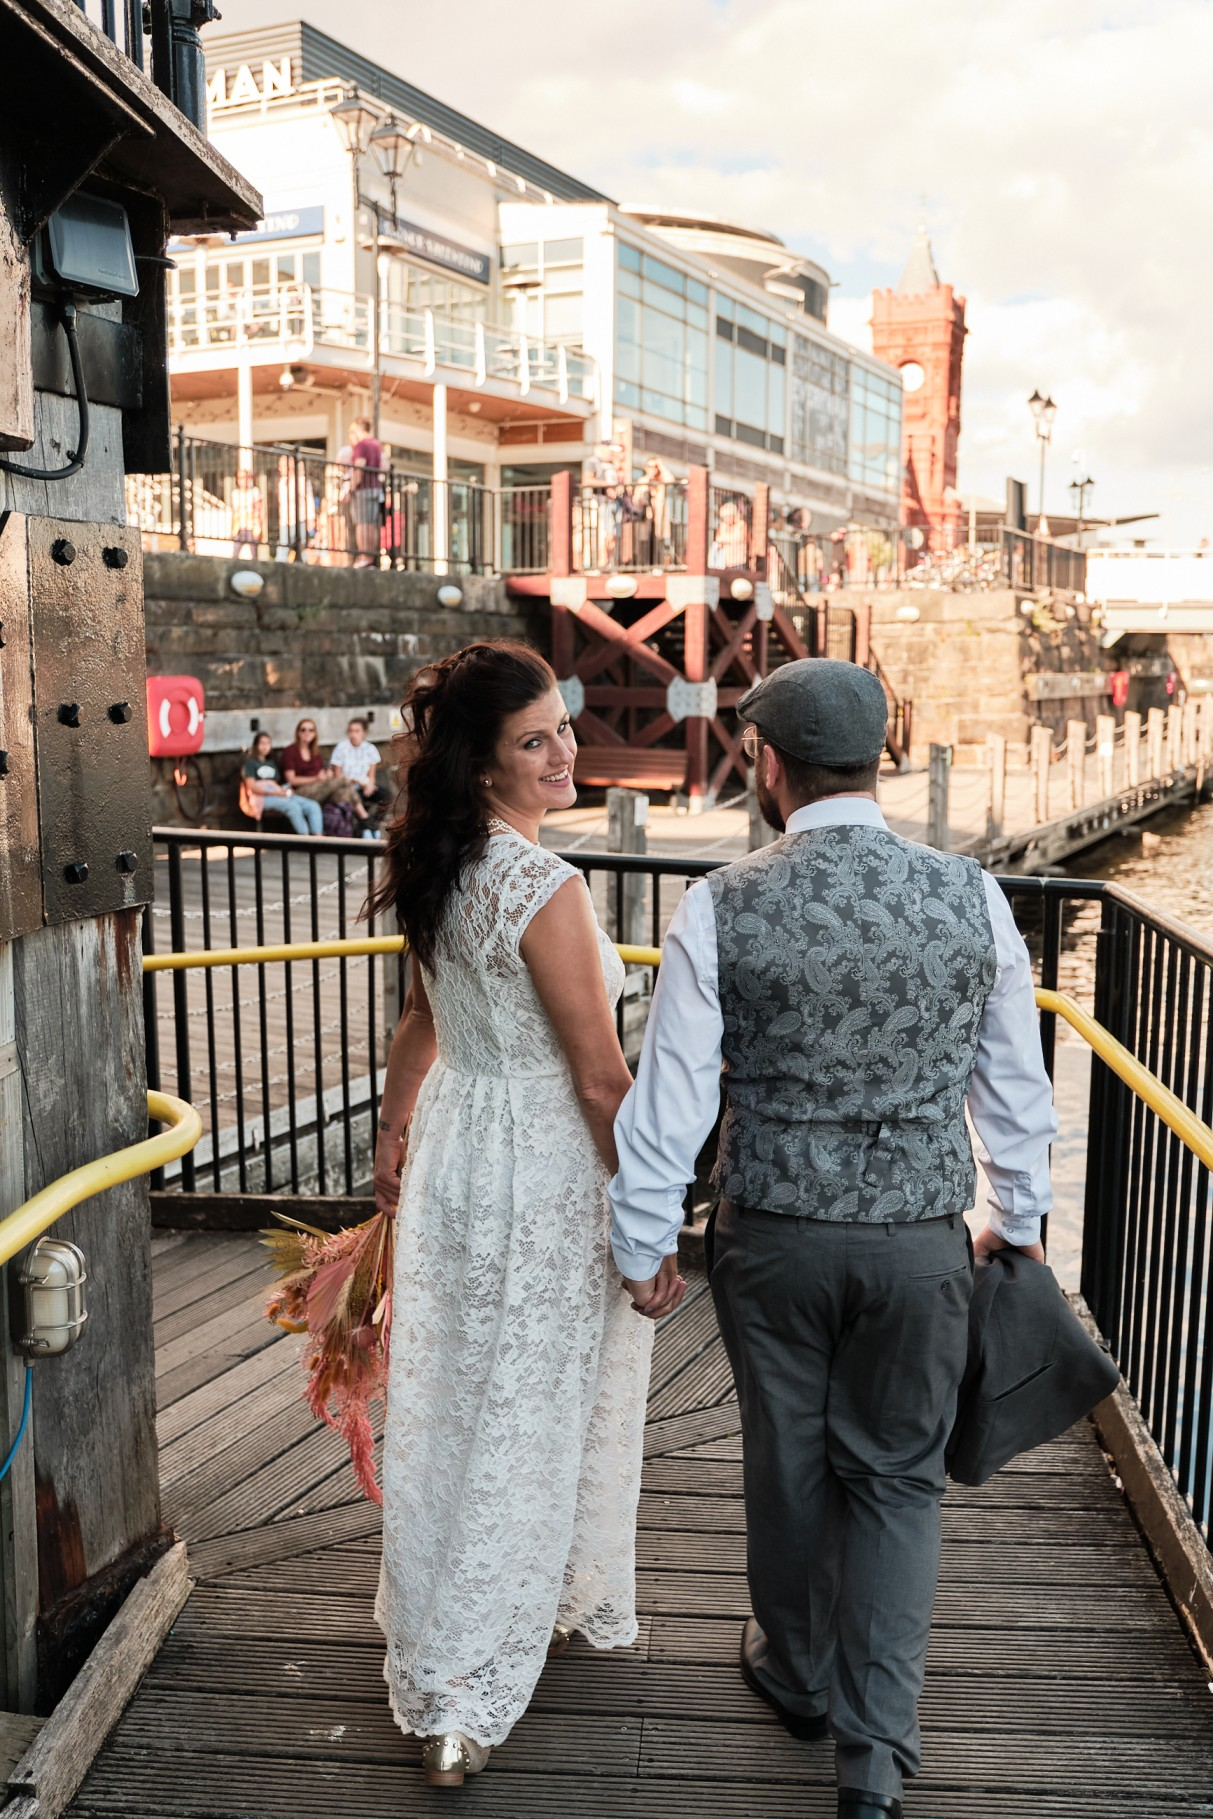 city elopement- cardiff bay wedding- wales elopement- urban elopement - cardiff wedding - colourful summer wedding- pier wedding photos